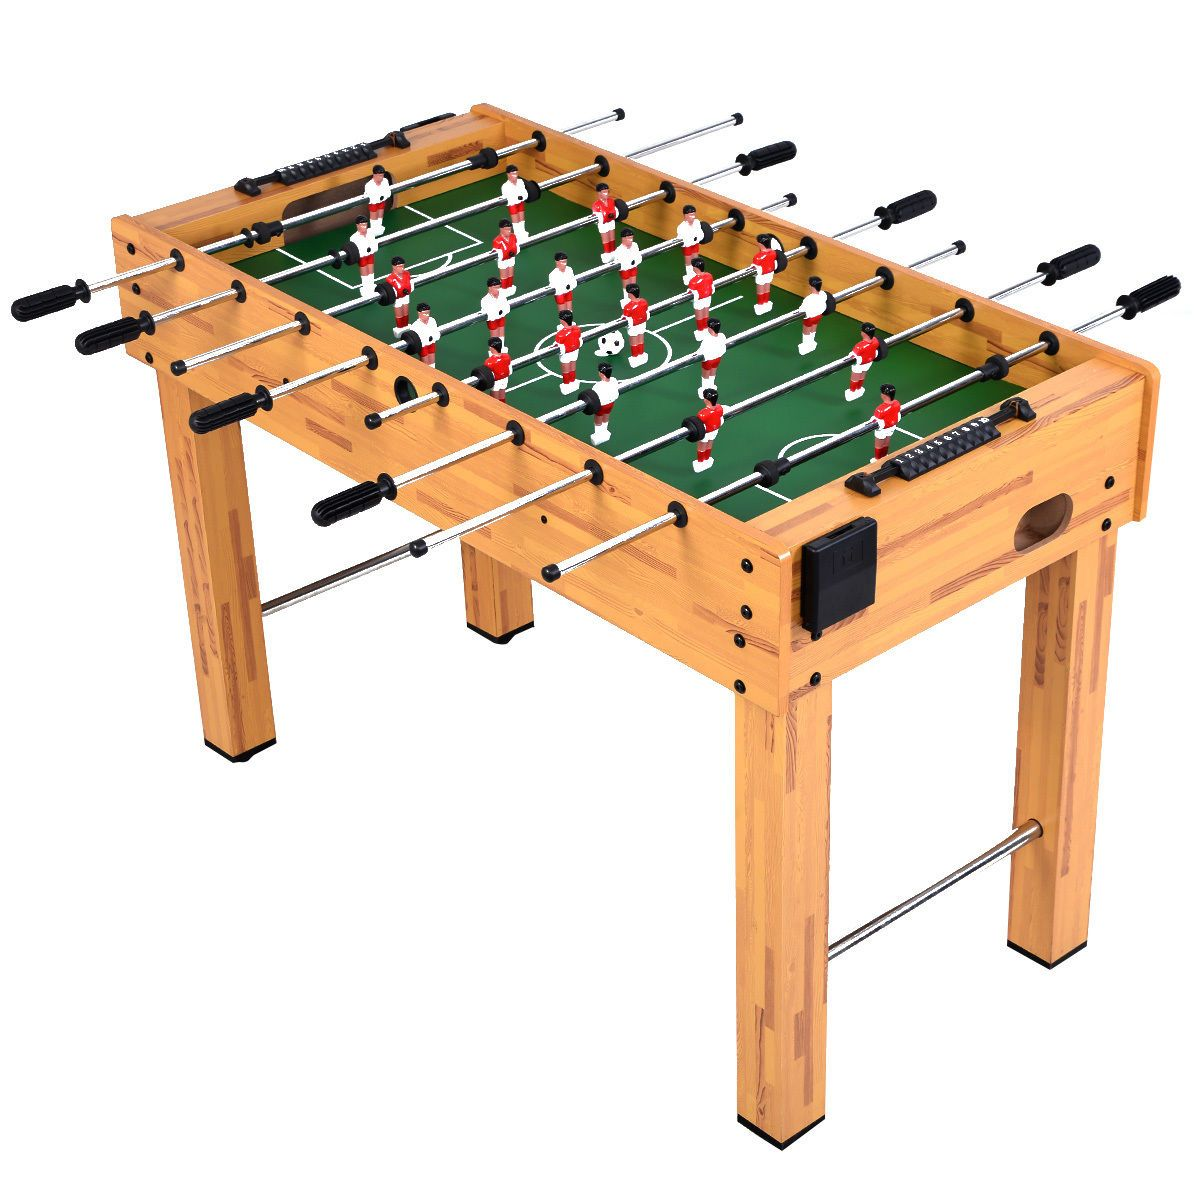 Foosball Soccer Table 48 Competition Sized Arcade Game Room Hockey Family Sport Sport